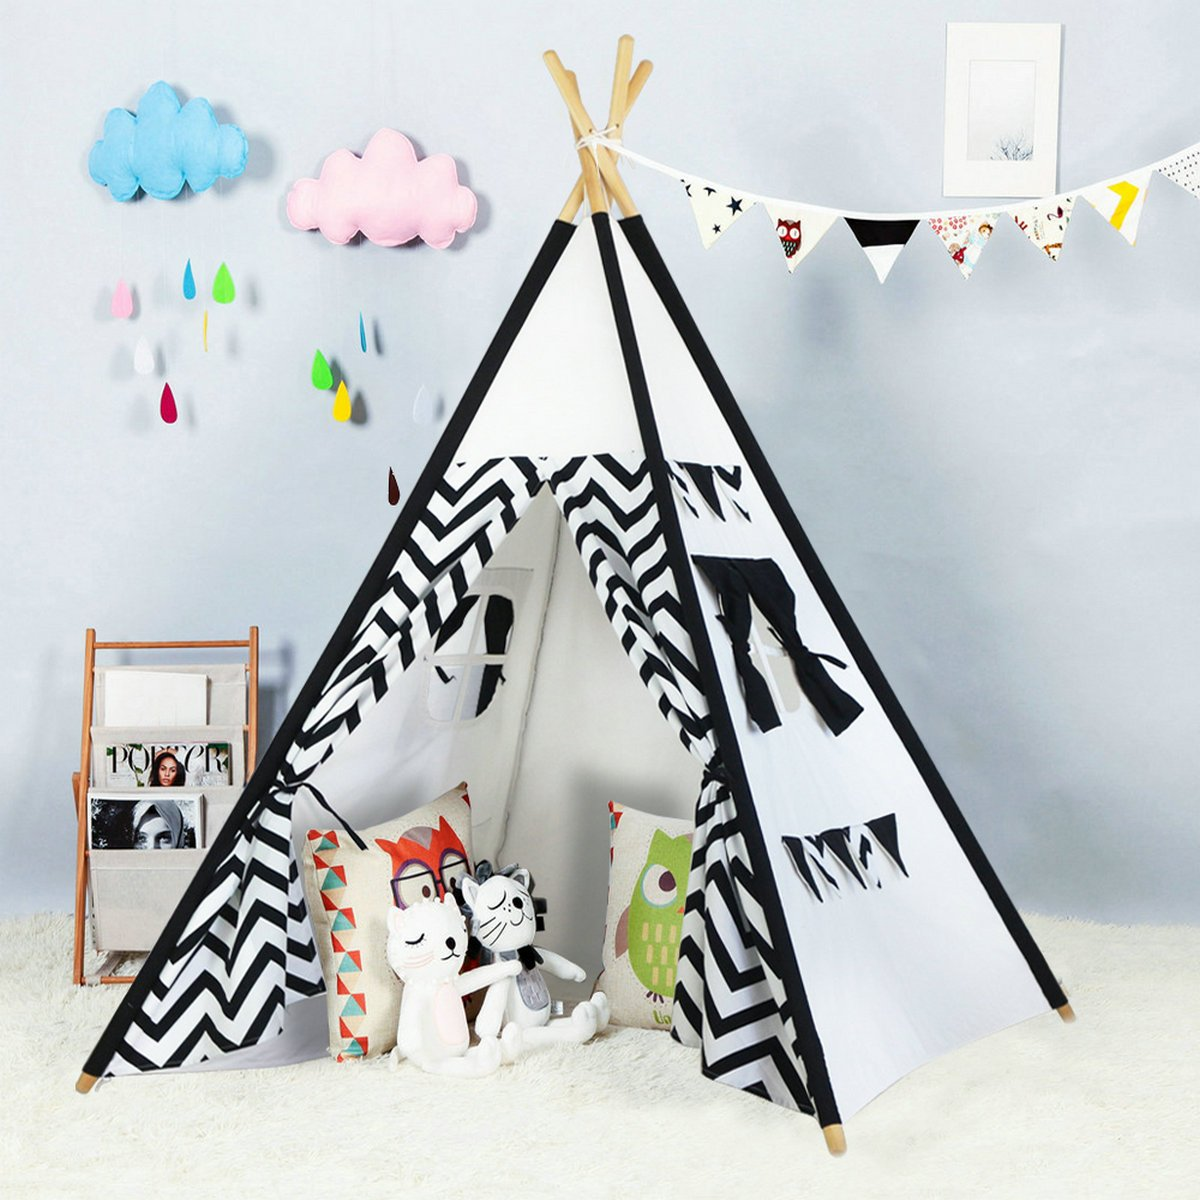 black wave Large Cotton Canvas Children Indian Tipi Playhouse with Carry Case by Steegic Kids Teepee Indoor Play tent